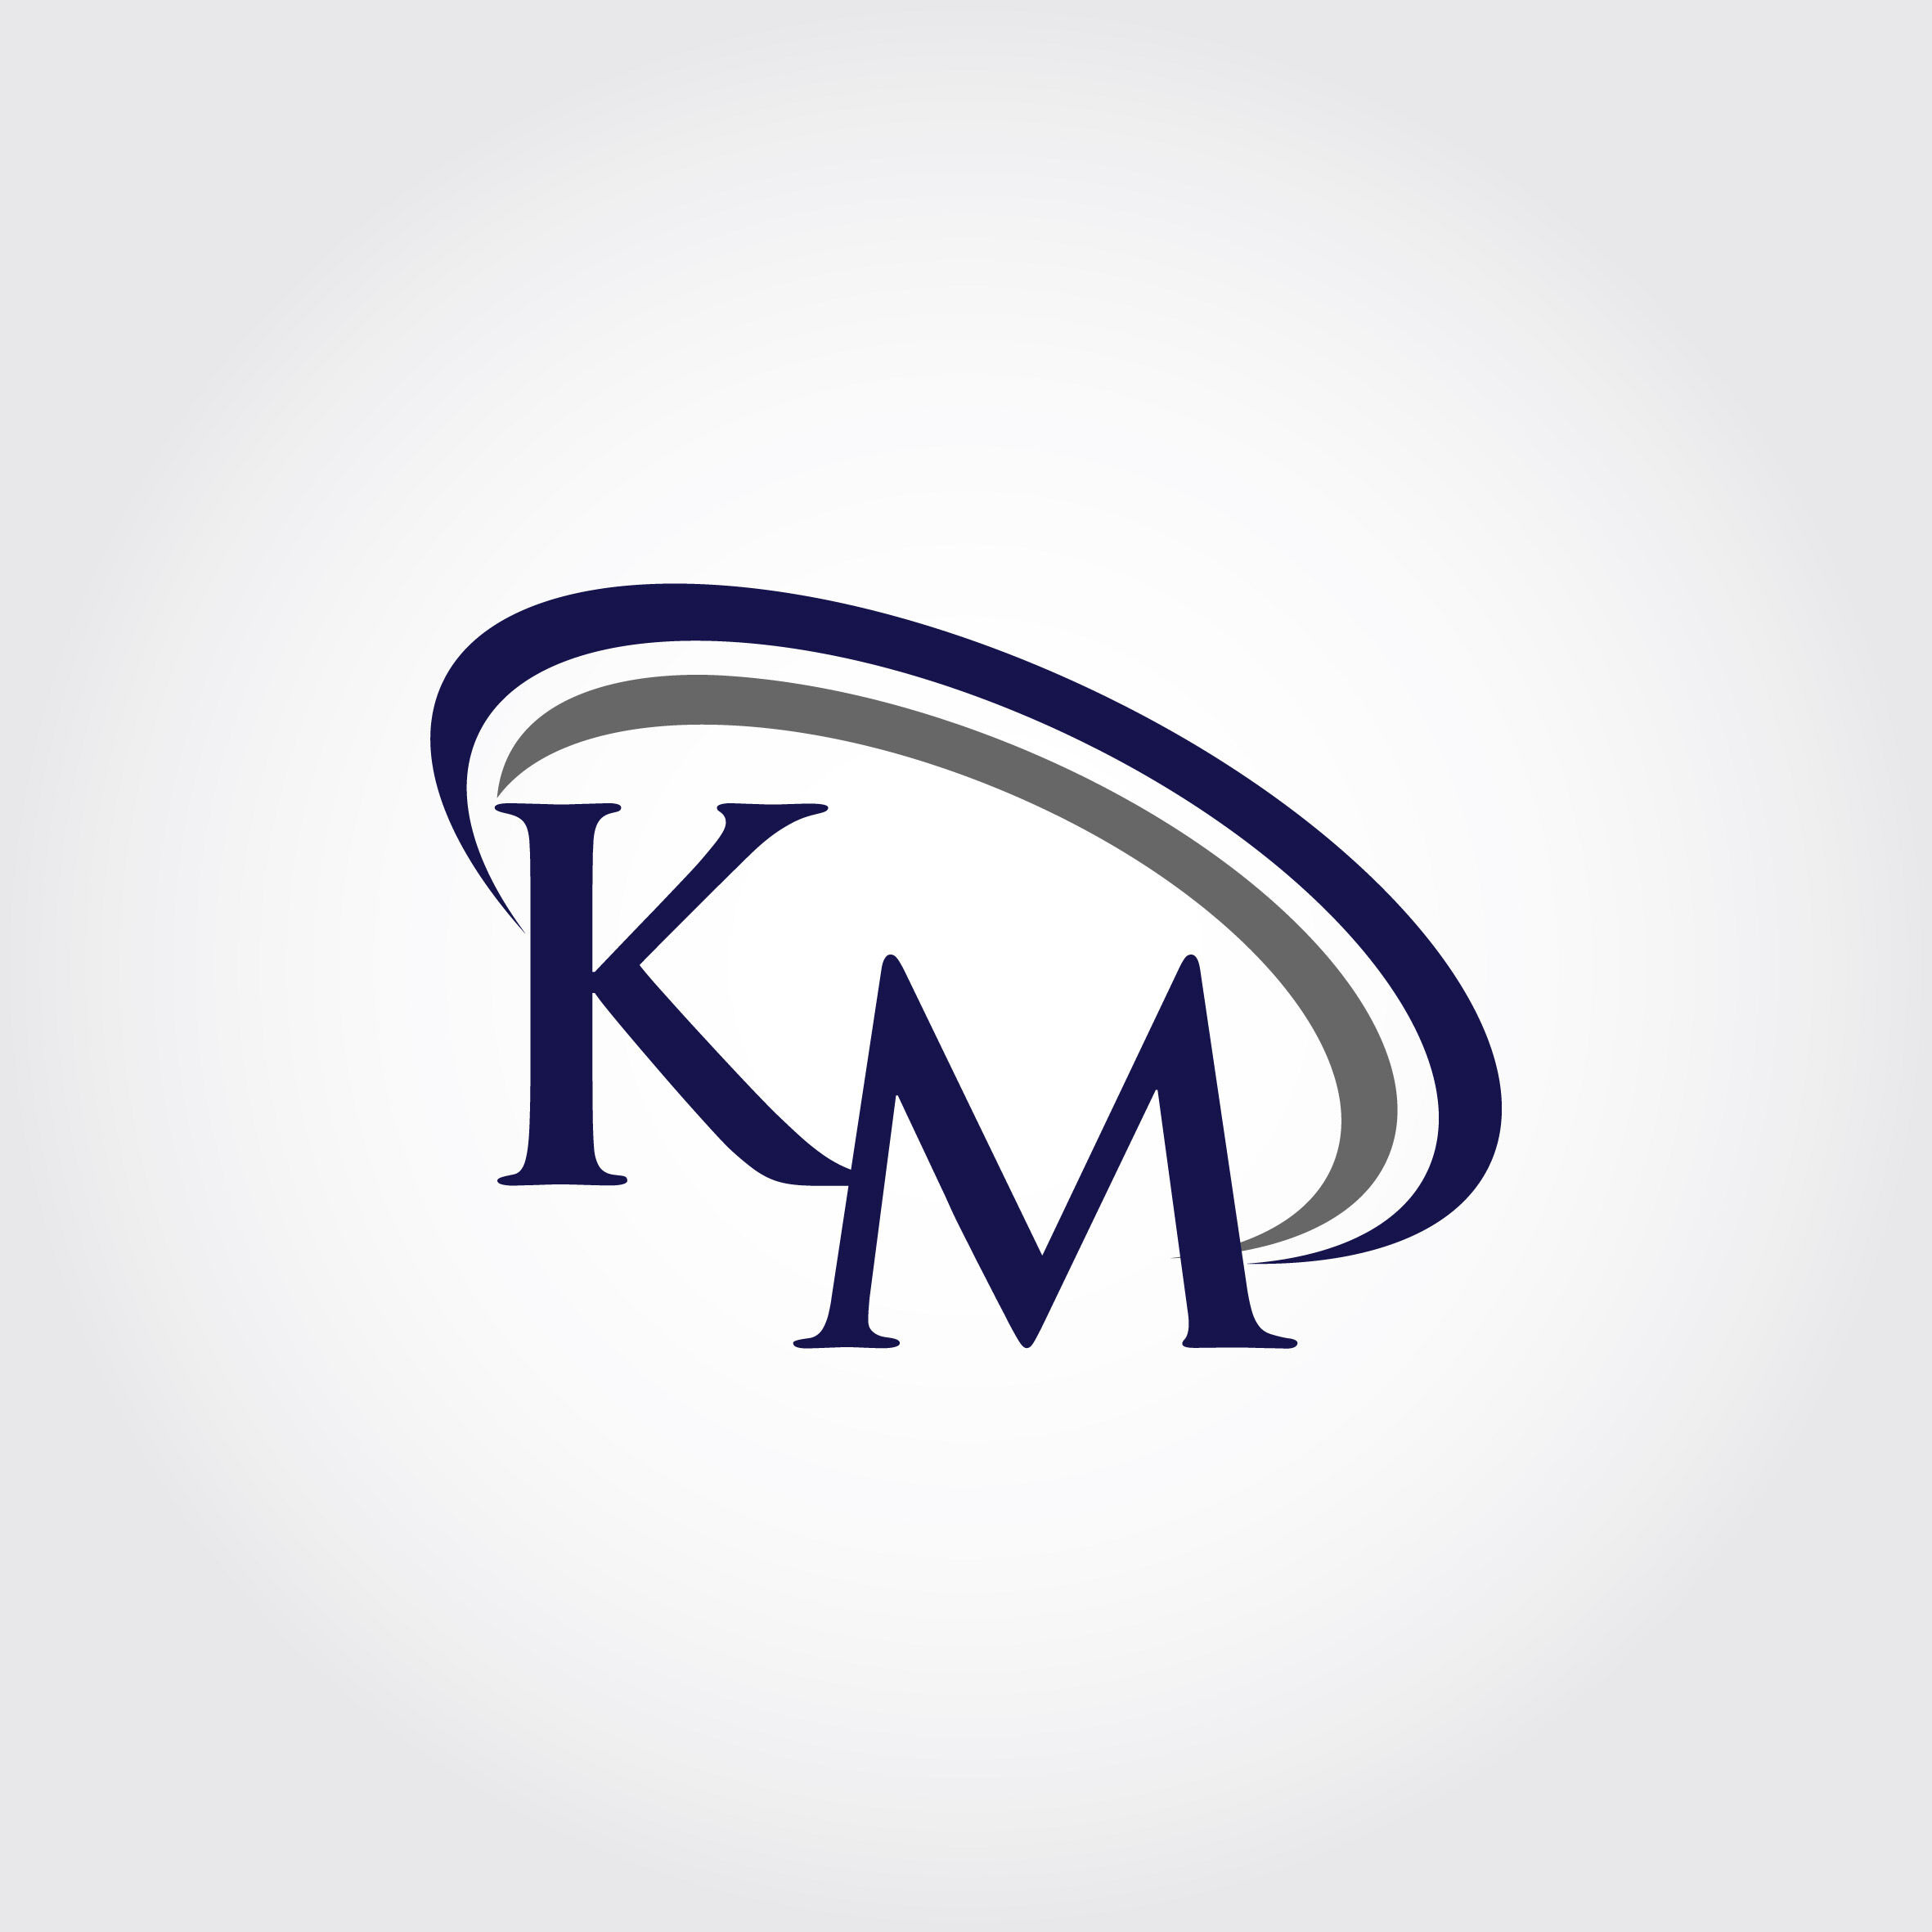 Monogram Km Logo Design By Vectorseller Thehungryjpeg Com